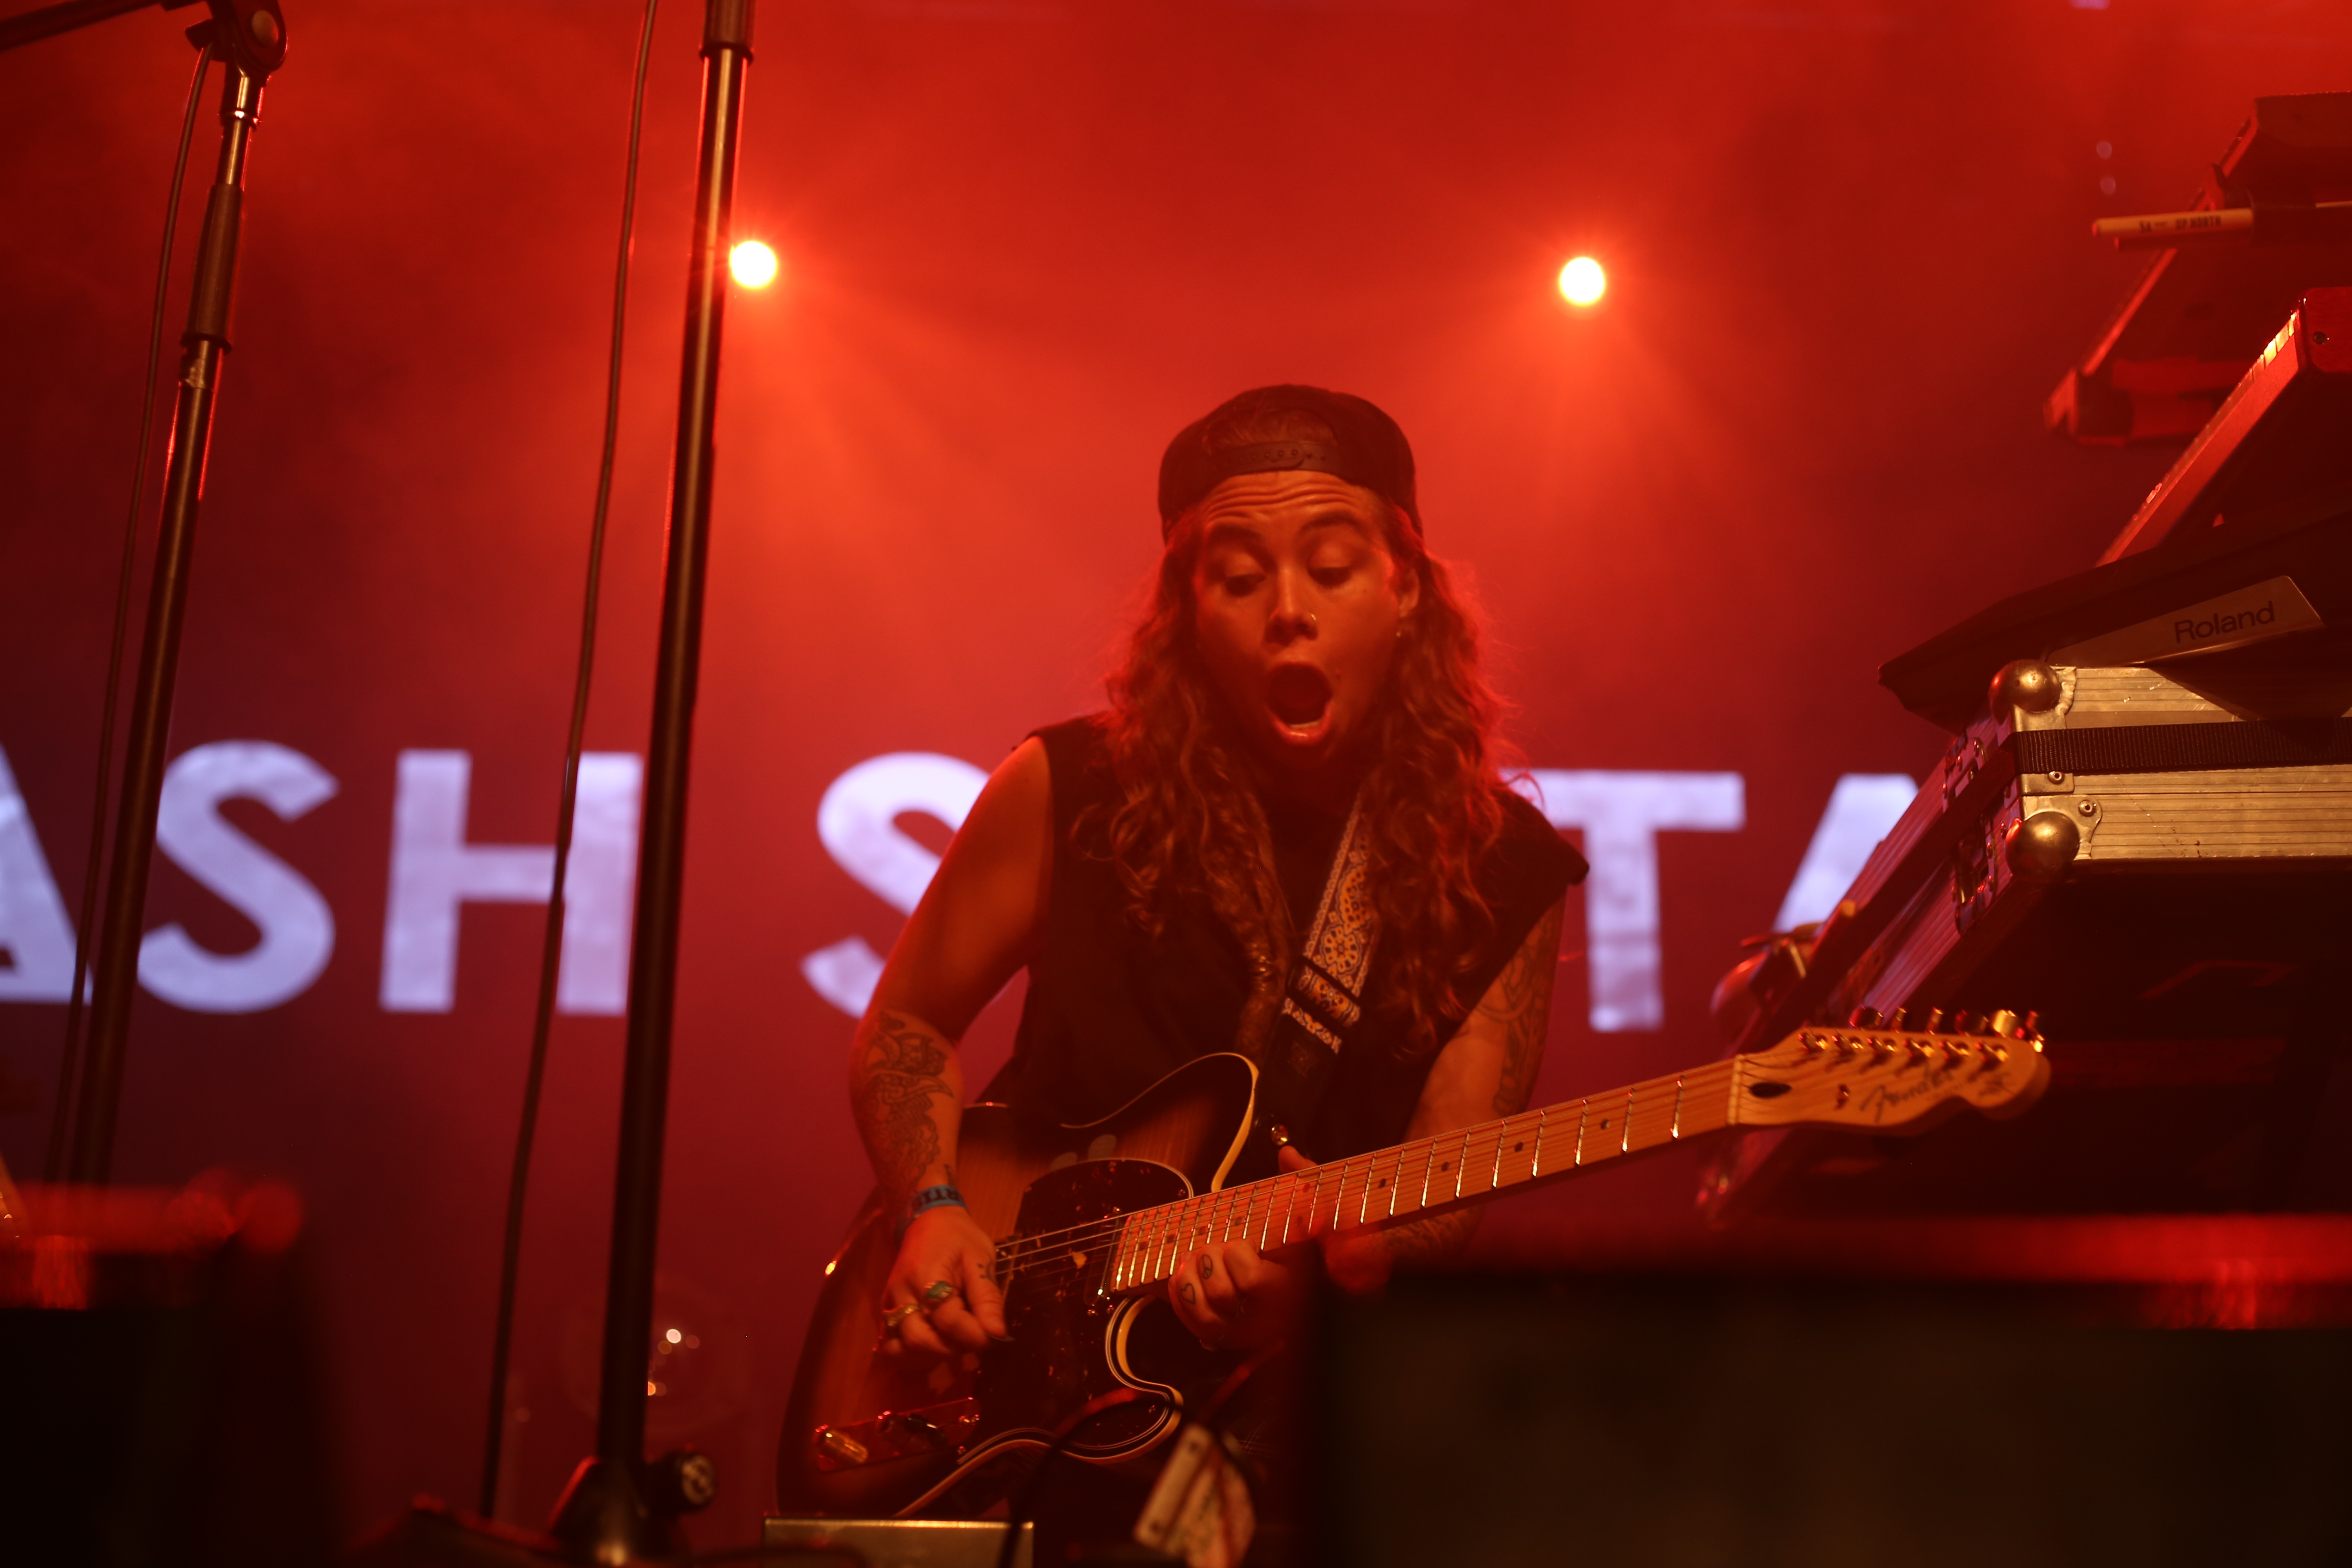 Sultana playing guitar at a live performance in Melbourne 376276a359a4